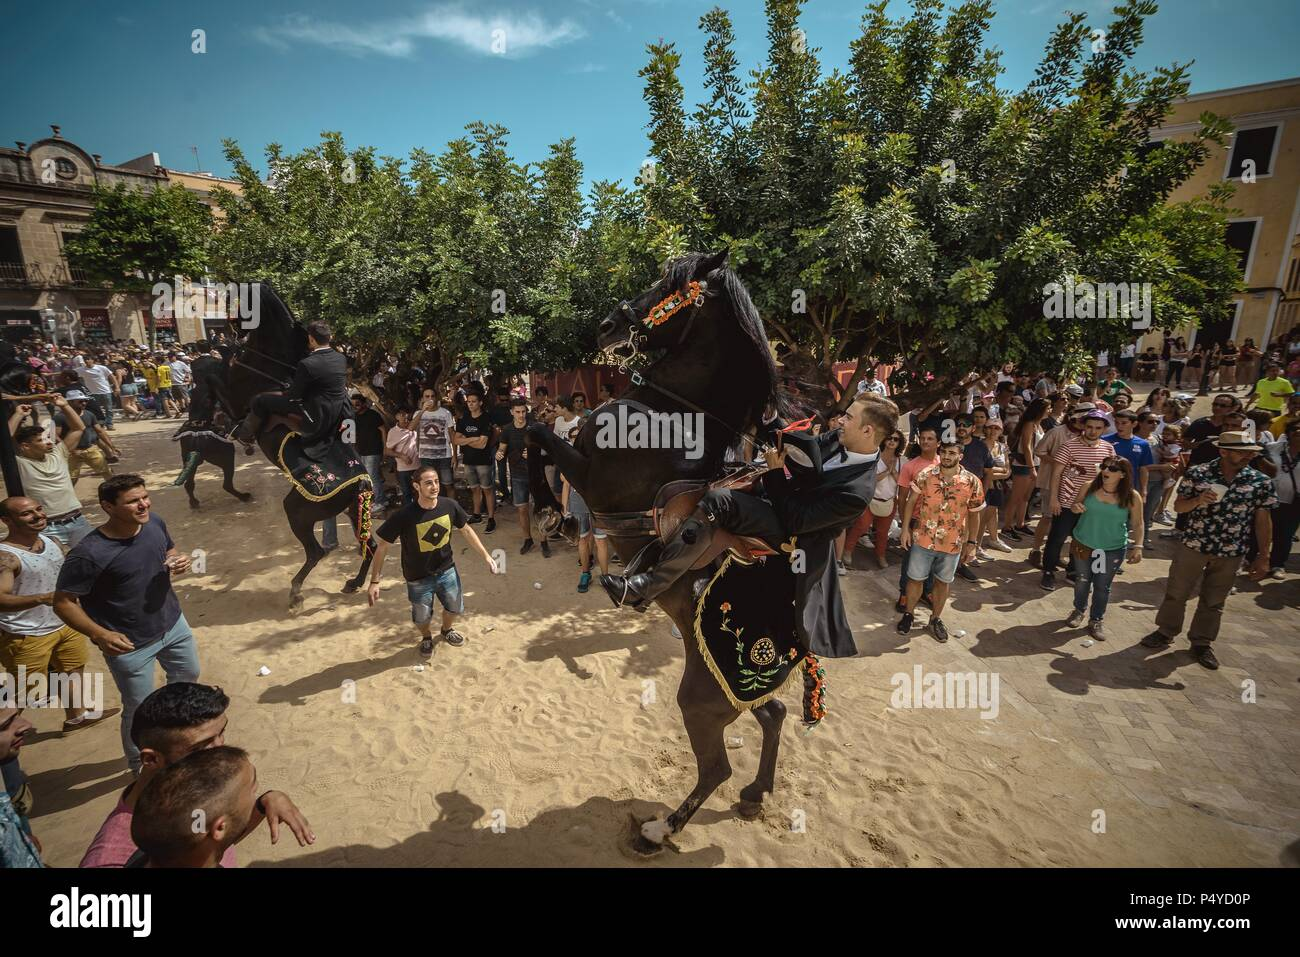 A 'caixer' (horse rider) rears up on his horse surrounded by a cheering crowd prior to the 'Caragol des Born' parade on the eve of the traditional 'Sant Joan' (Saint John) festival in Ciutadella de Menorca Credit: Matthias Oesterle/Alamy Live News - Stock Image